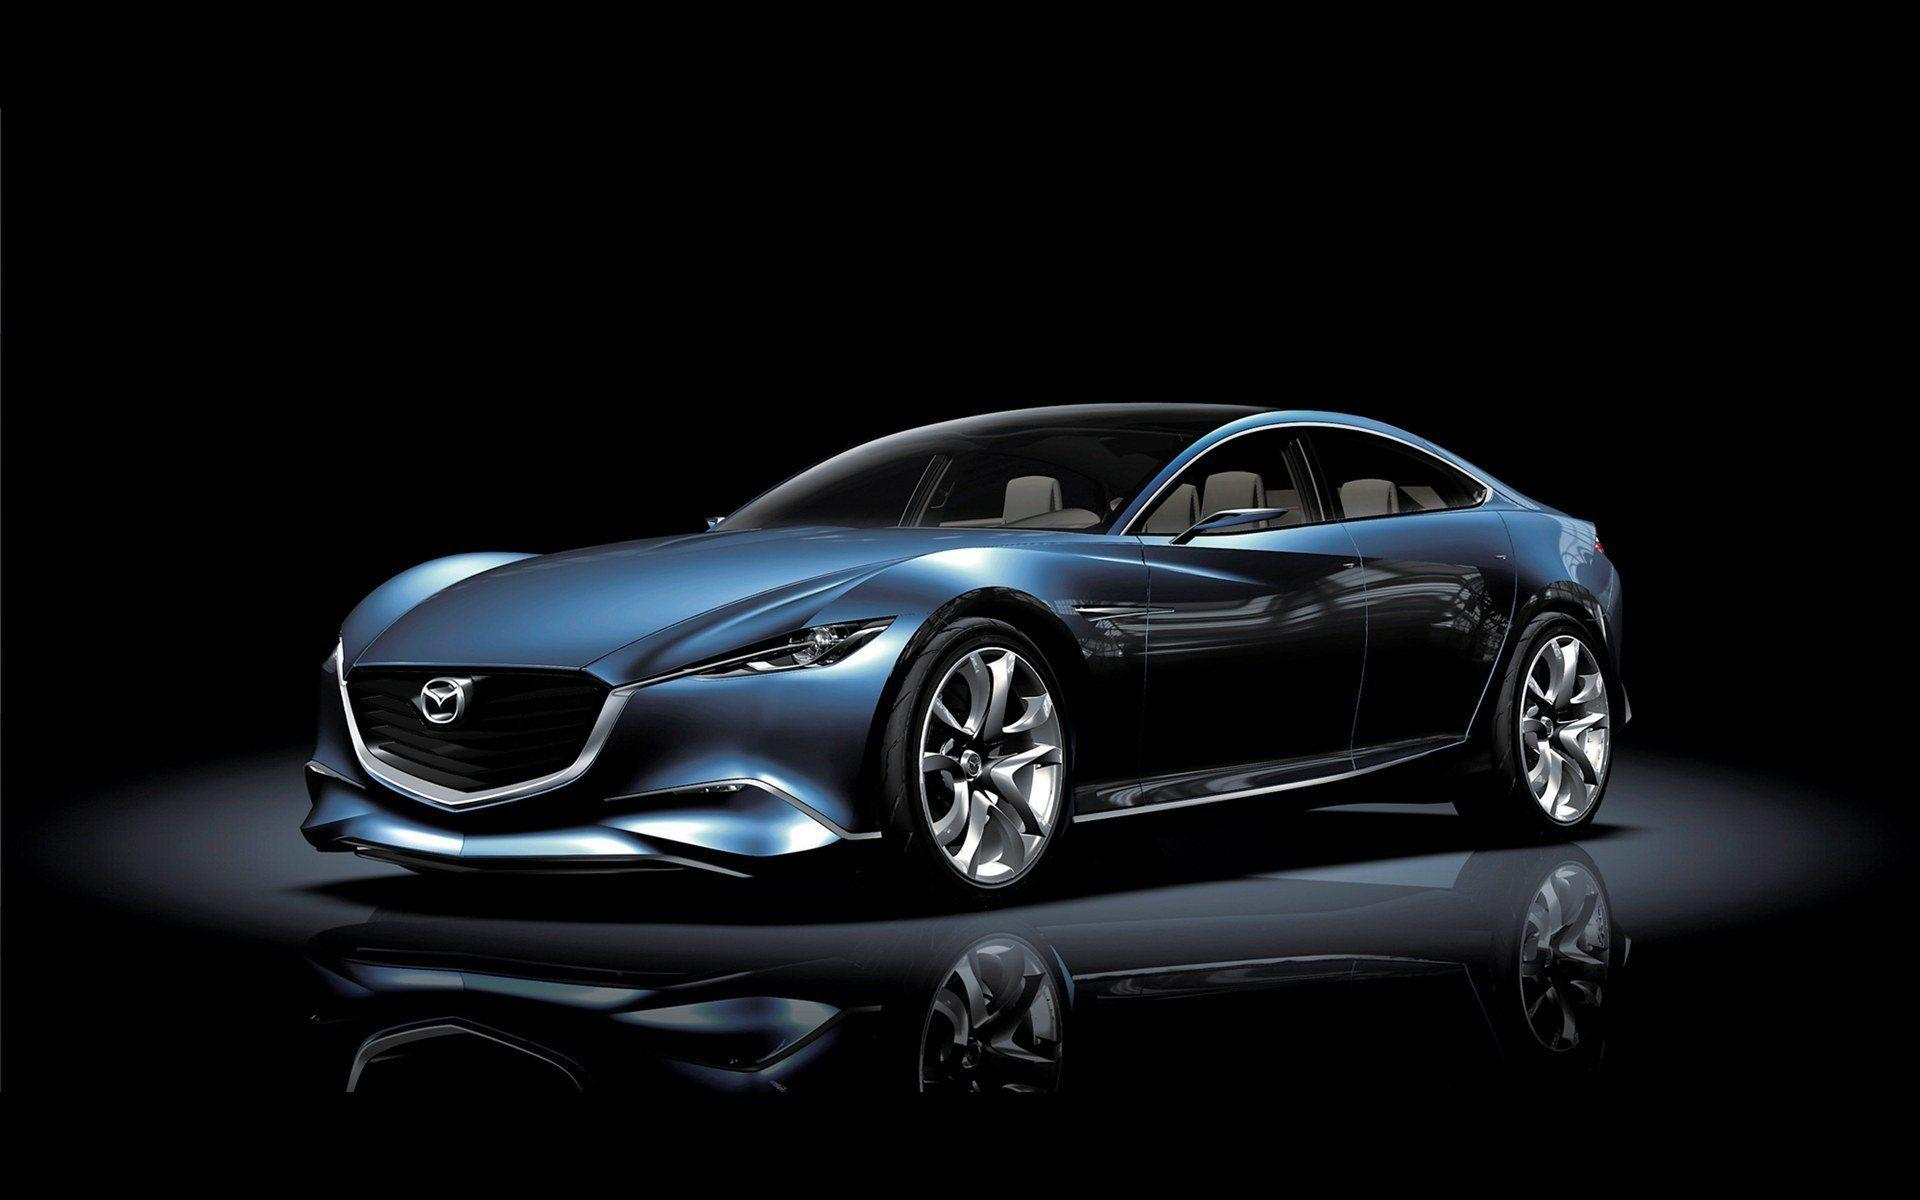 115 Mazda HD Wallpapers